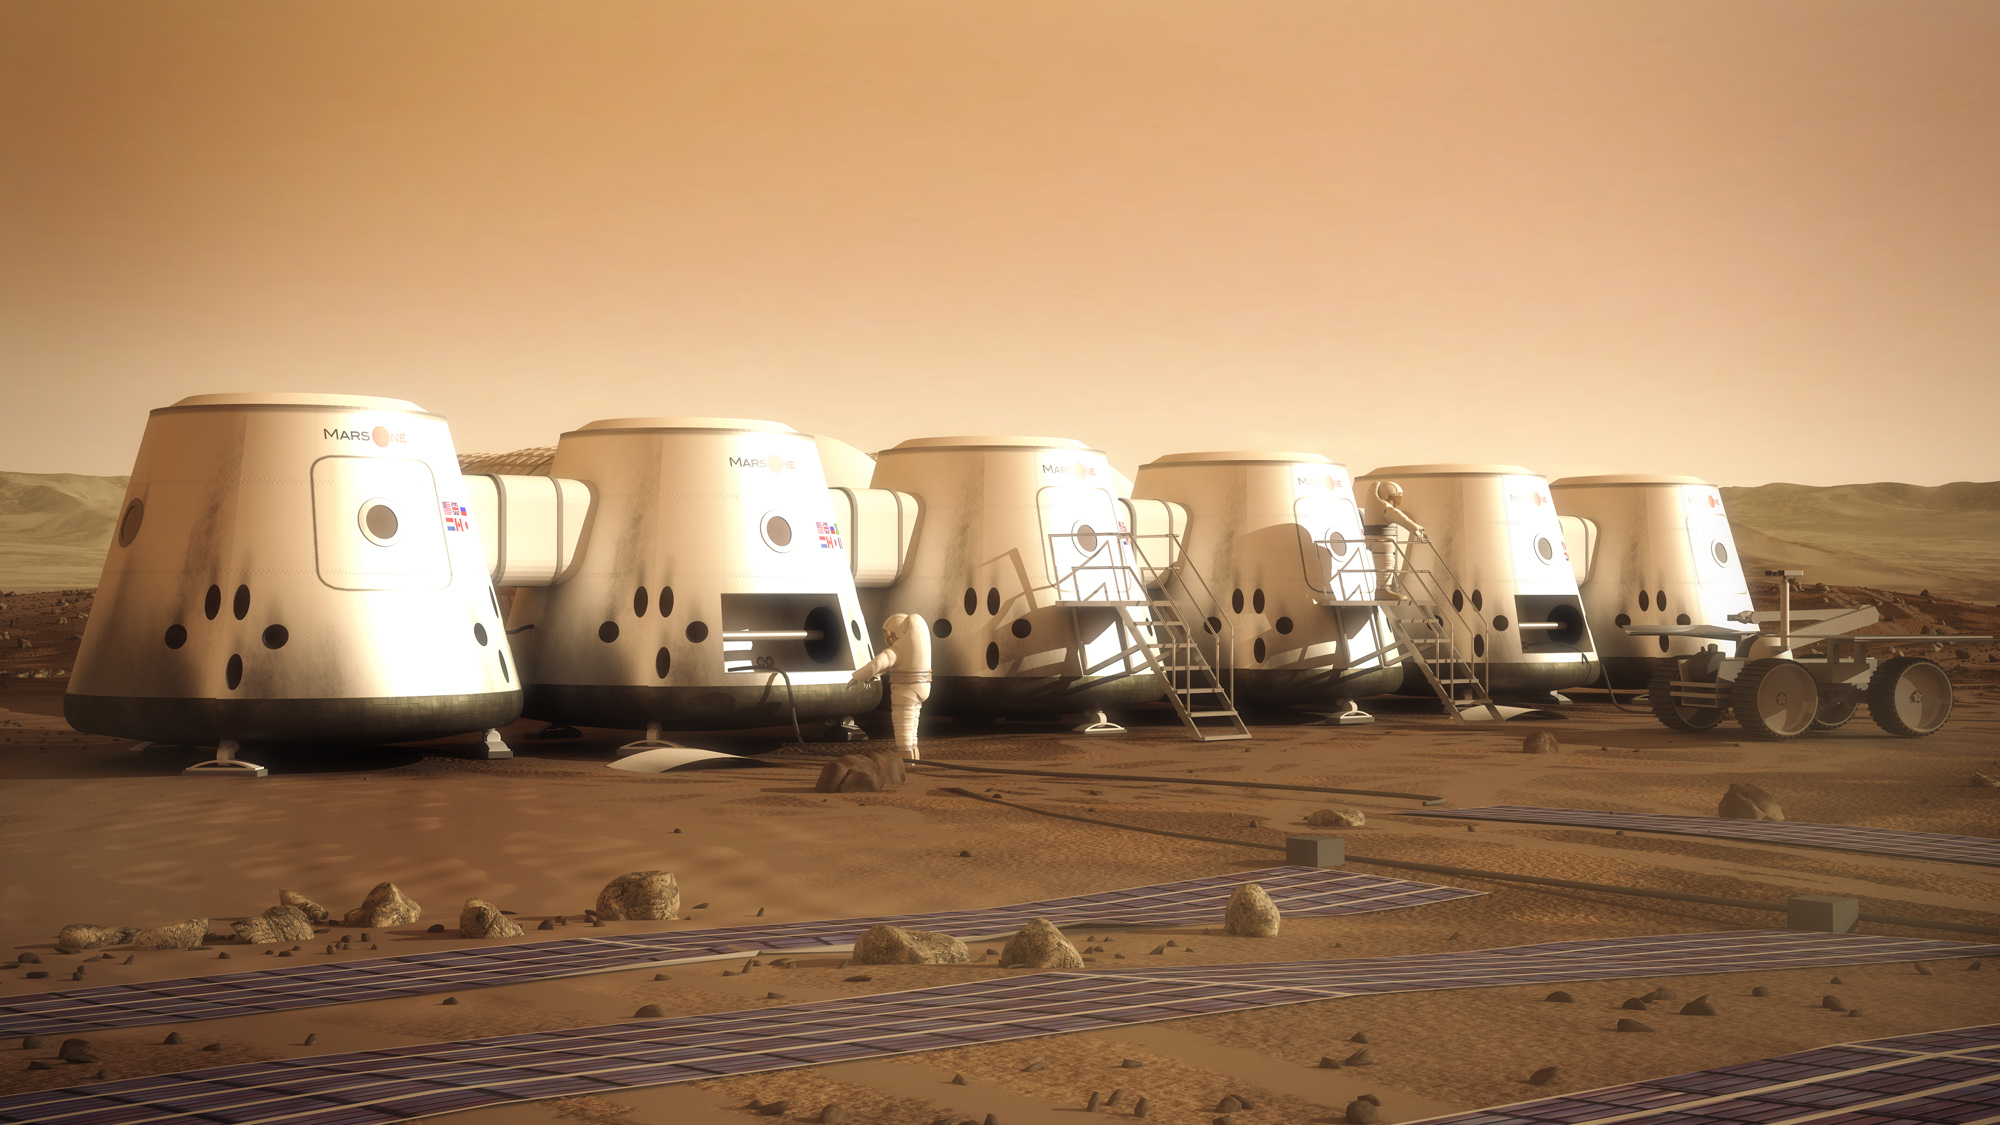 Private Mars Colony Is No Place for Children (Yet)